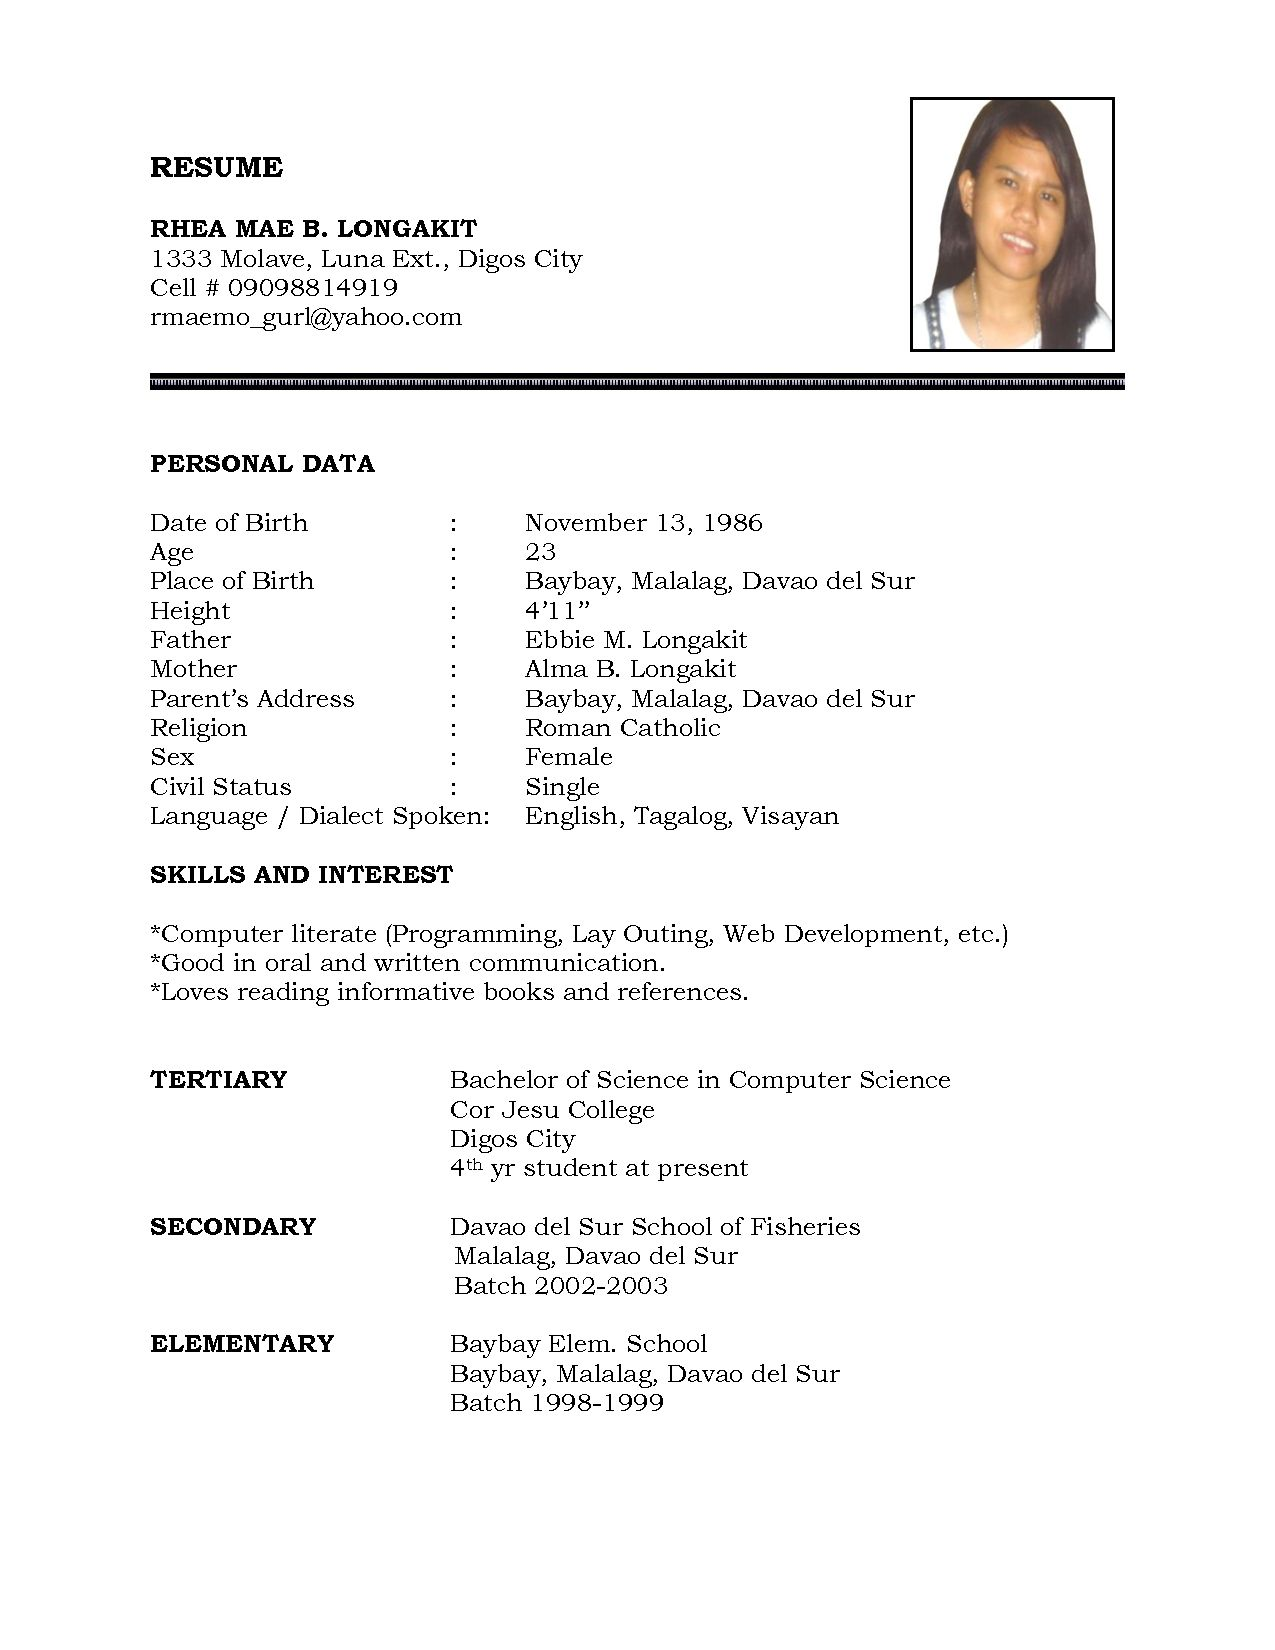 download free blank resume form template printable biodata format - Download Tagalog Resume Sample